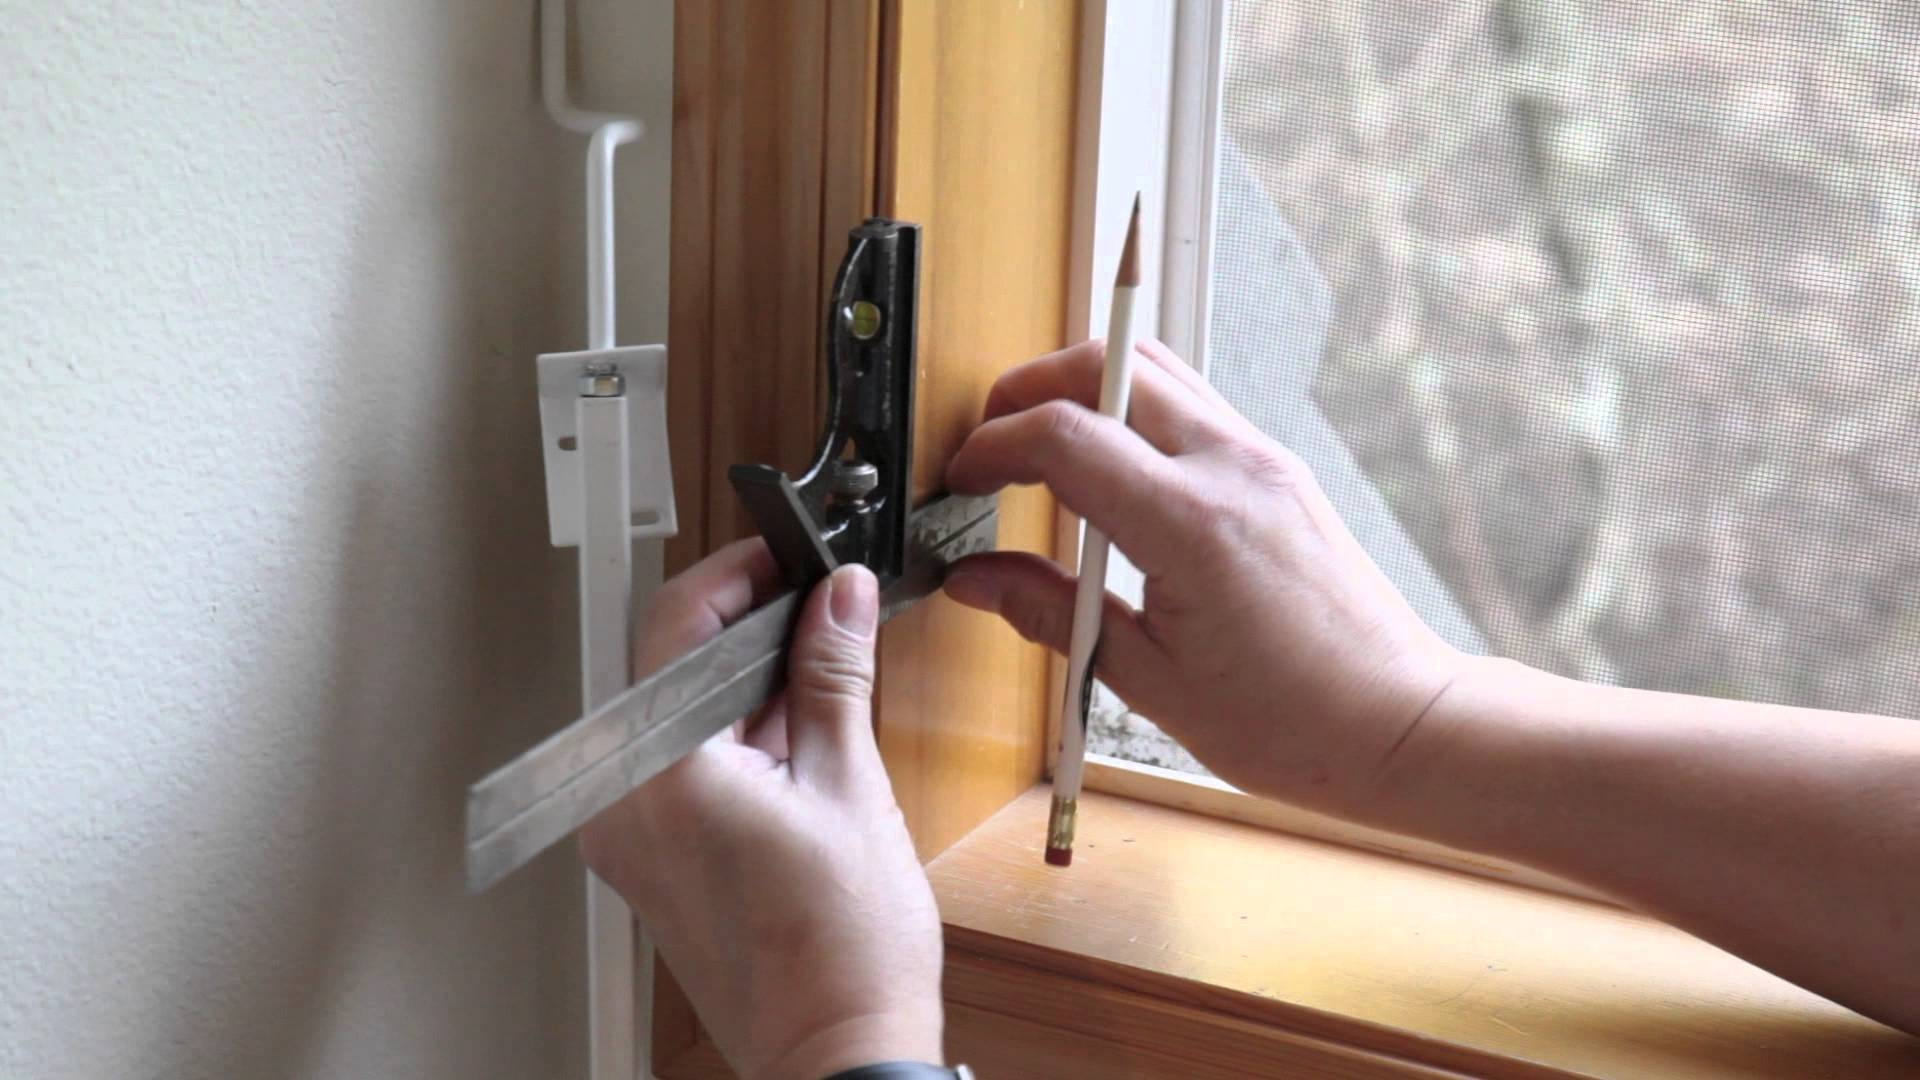 Basement Window Security Locks